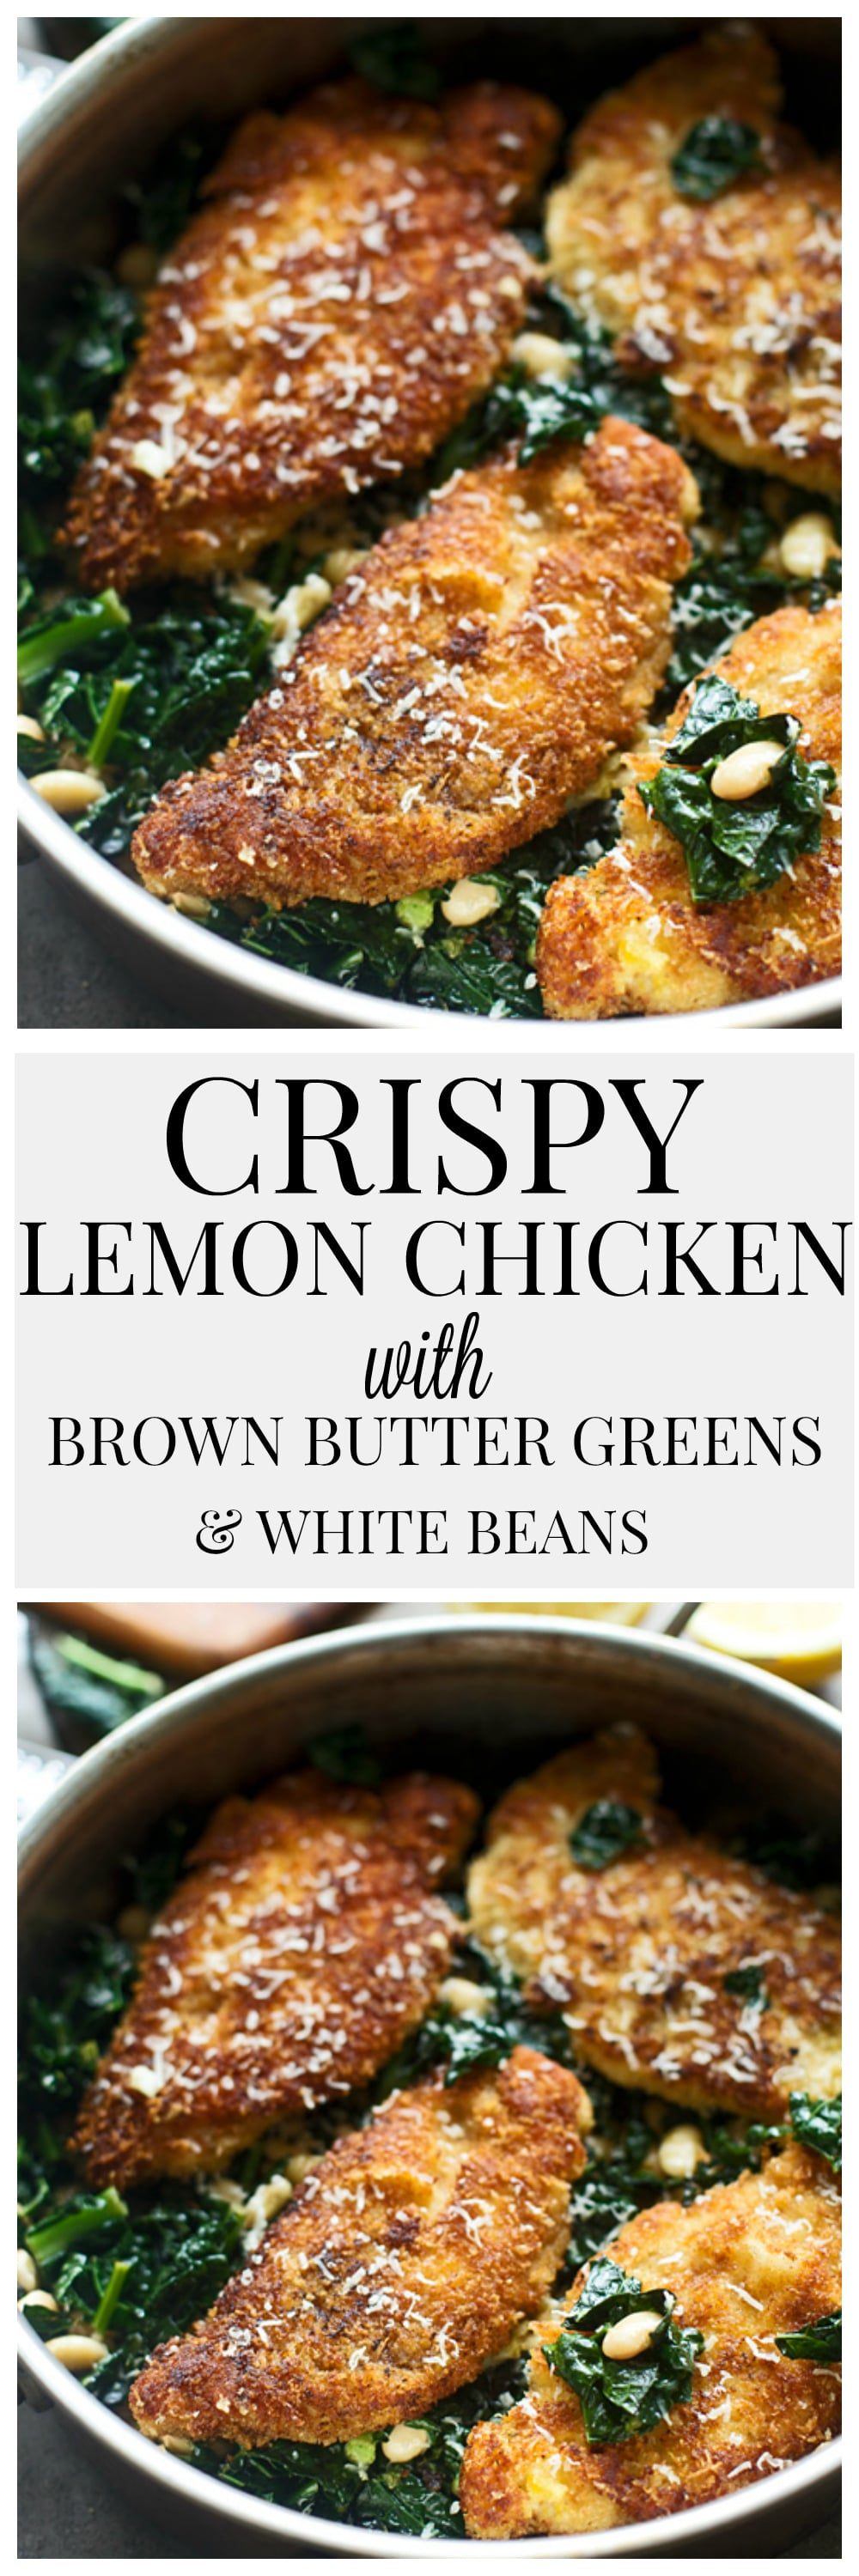 Crispy Lemon Chicken with Brown Butter Greens and White Beans ...